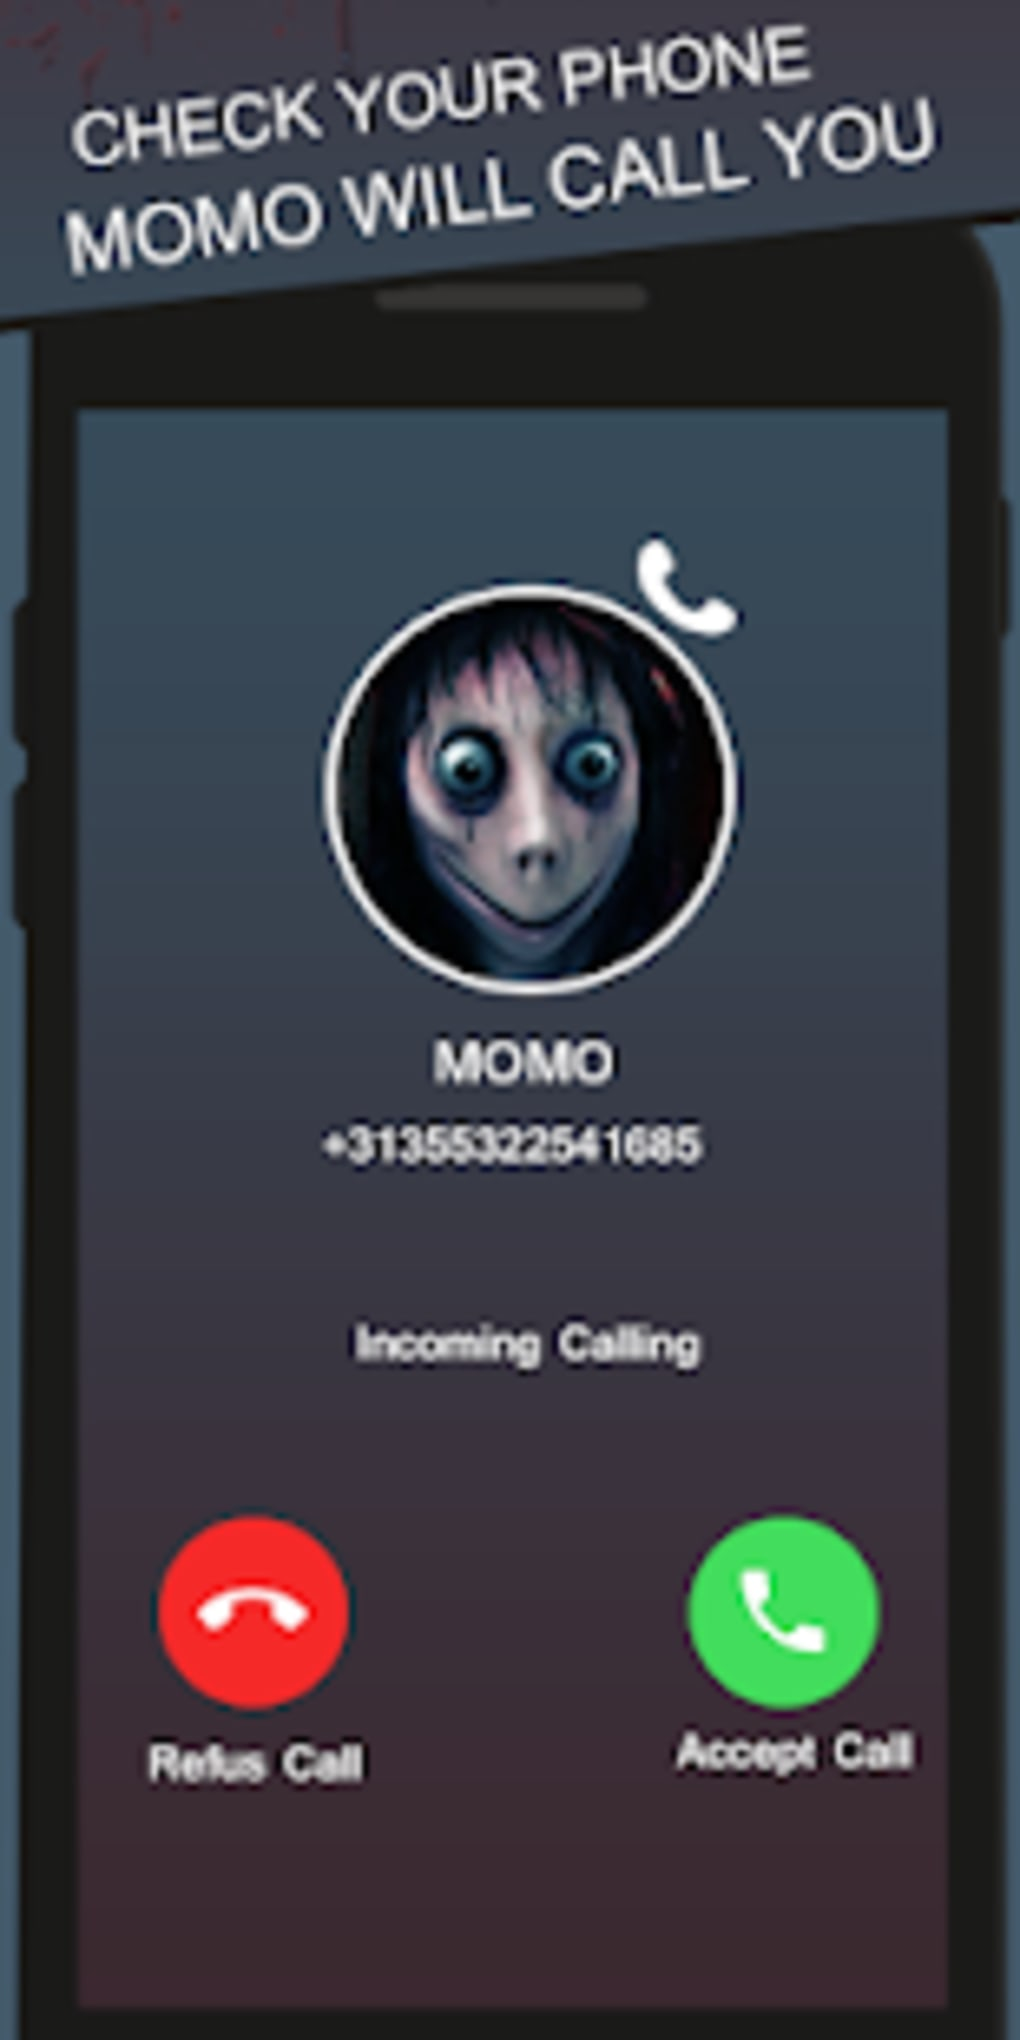 fake video chat with calling from momo - prank for Android - Download